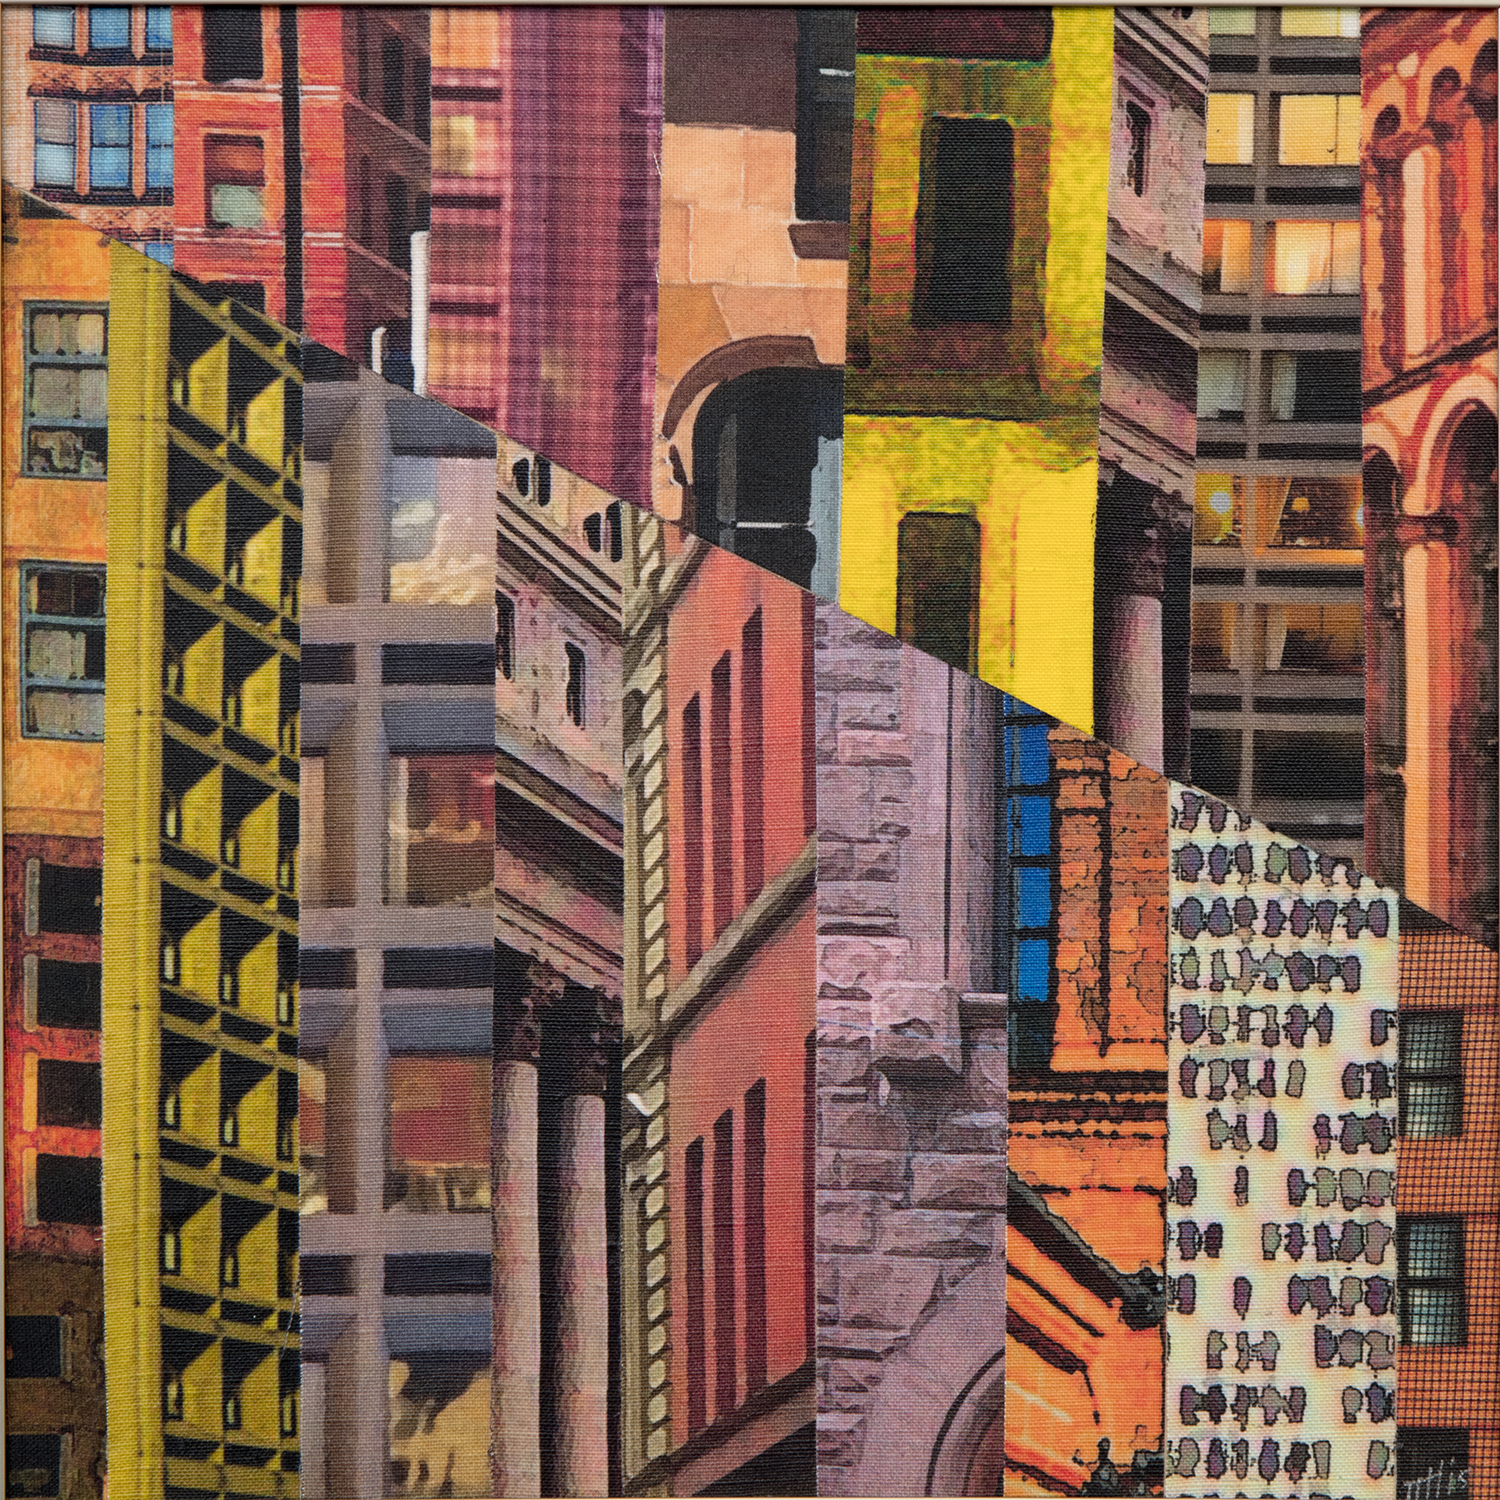 patchwork city collage series